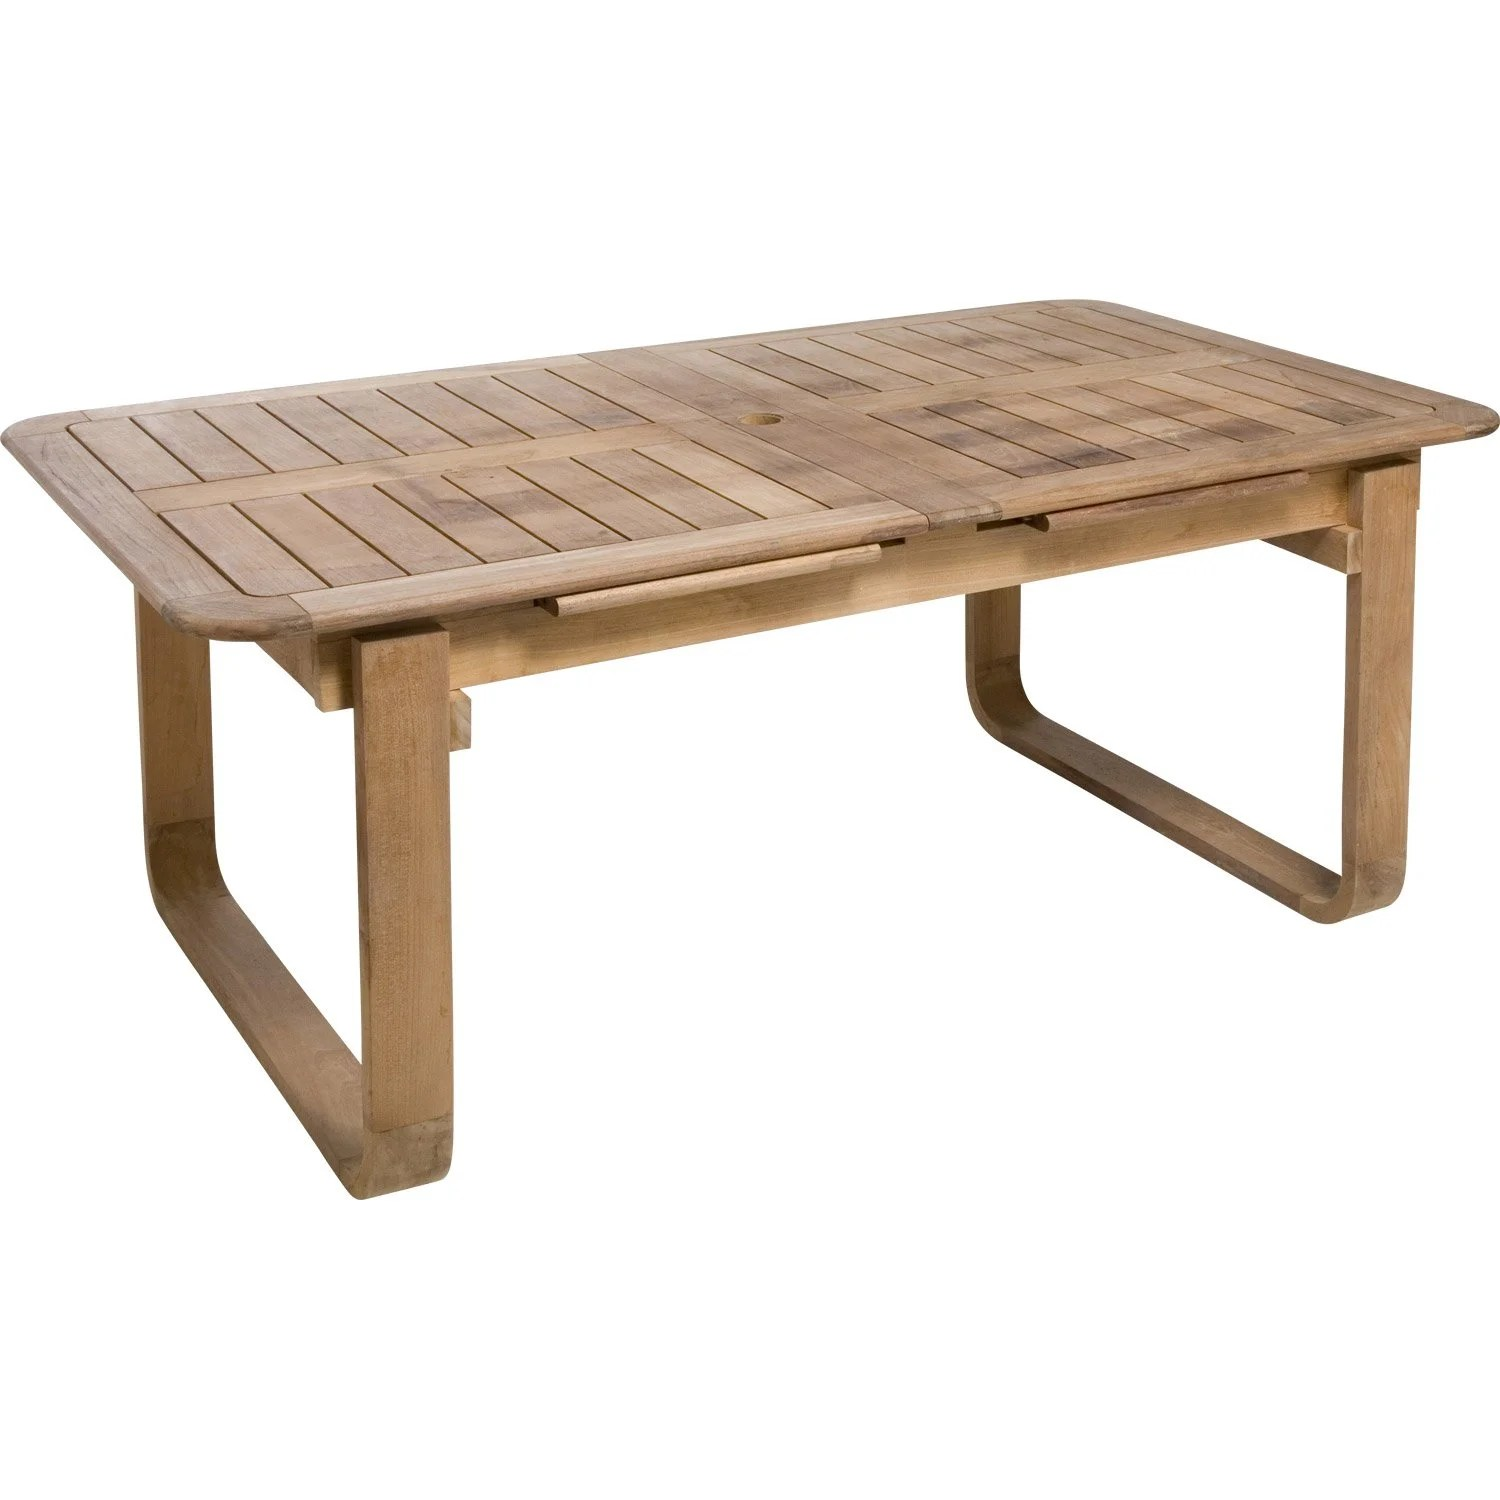 Leroy Merlin Table Exterieur Table Exterieur Leroy Merlin – Table De Lit